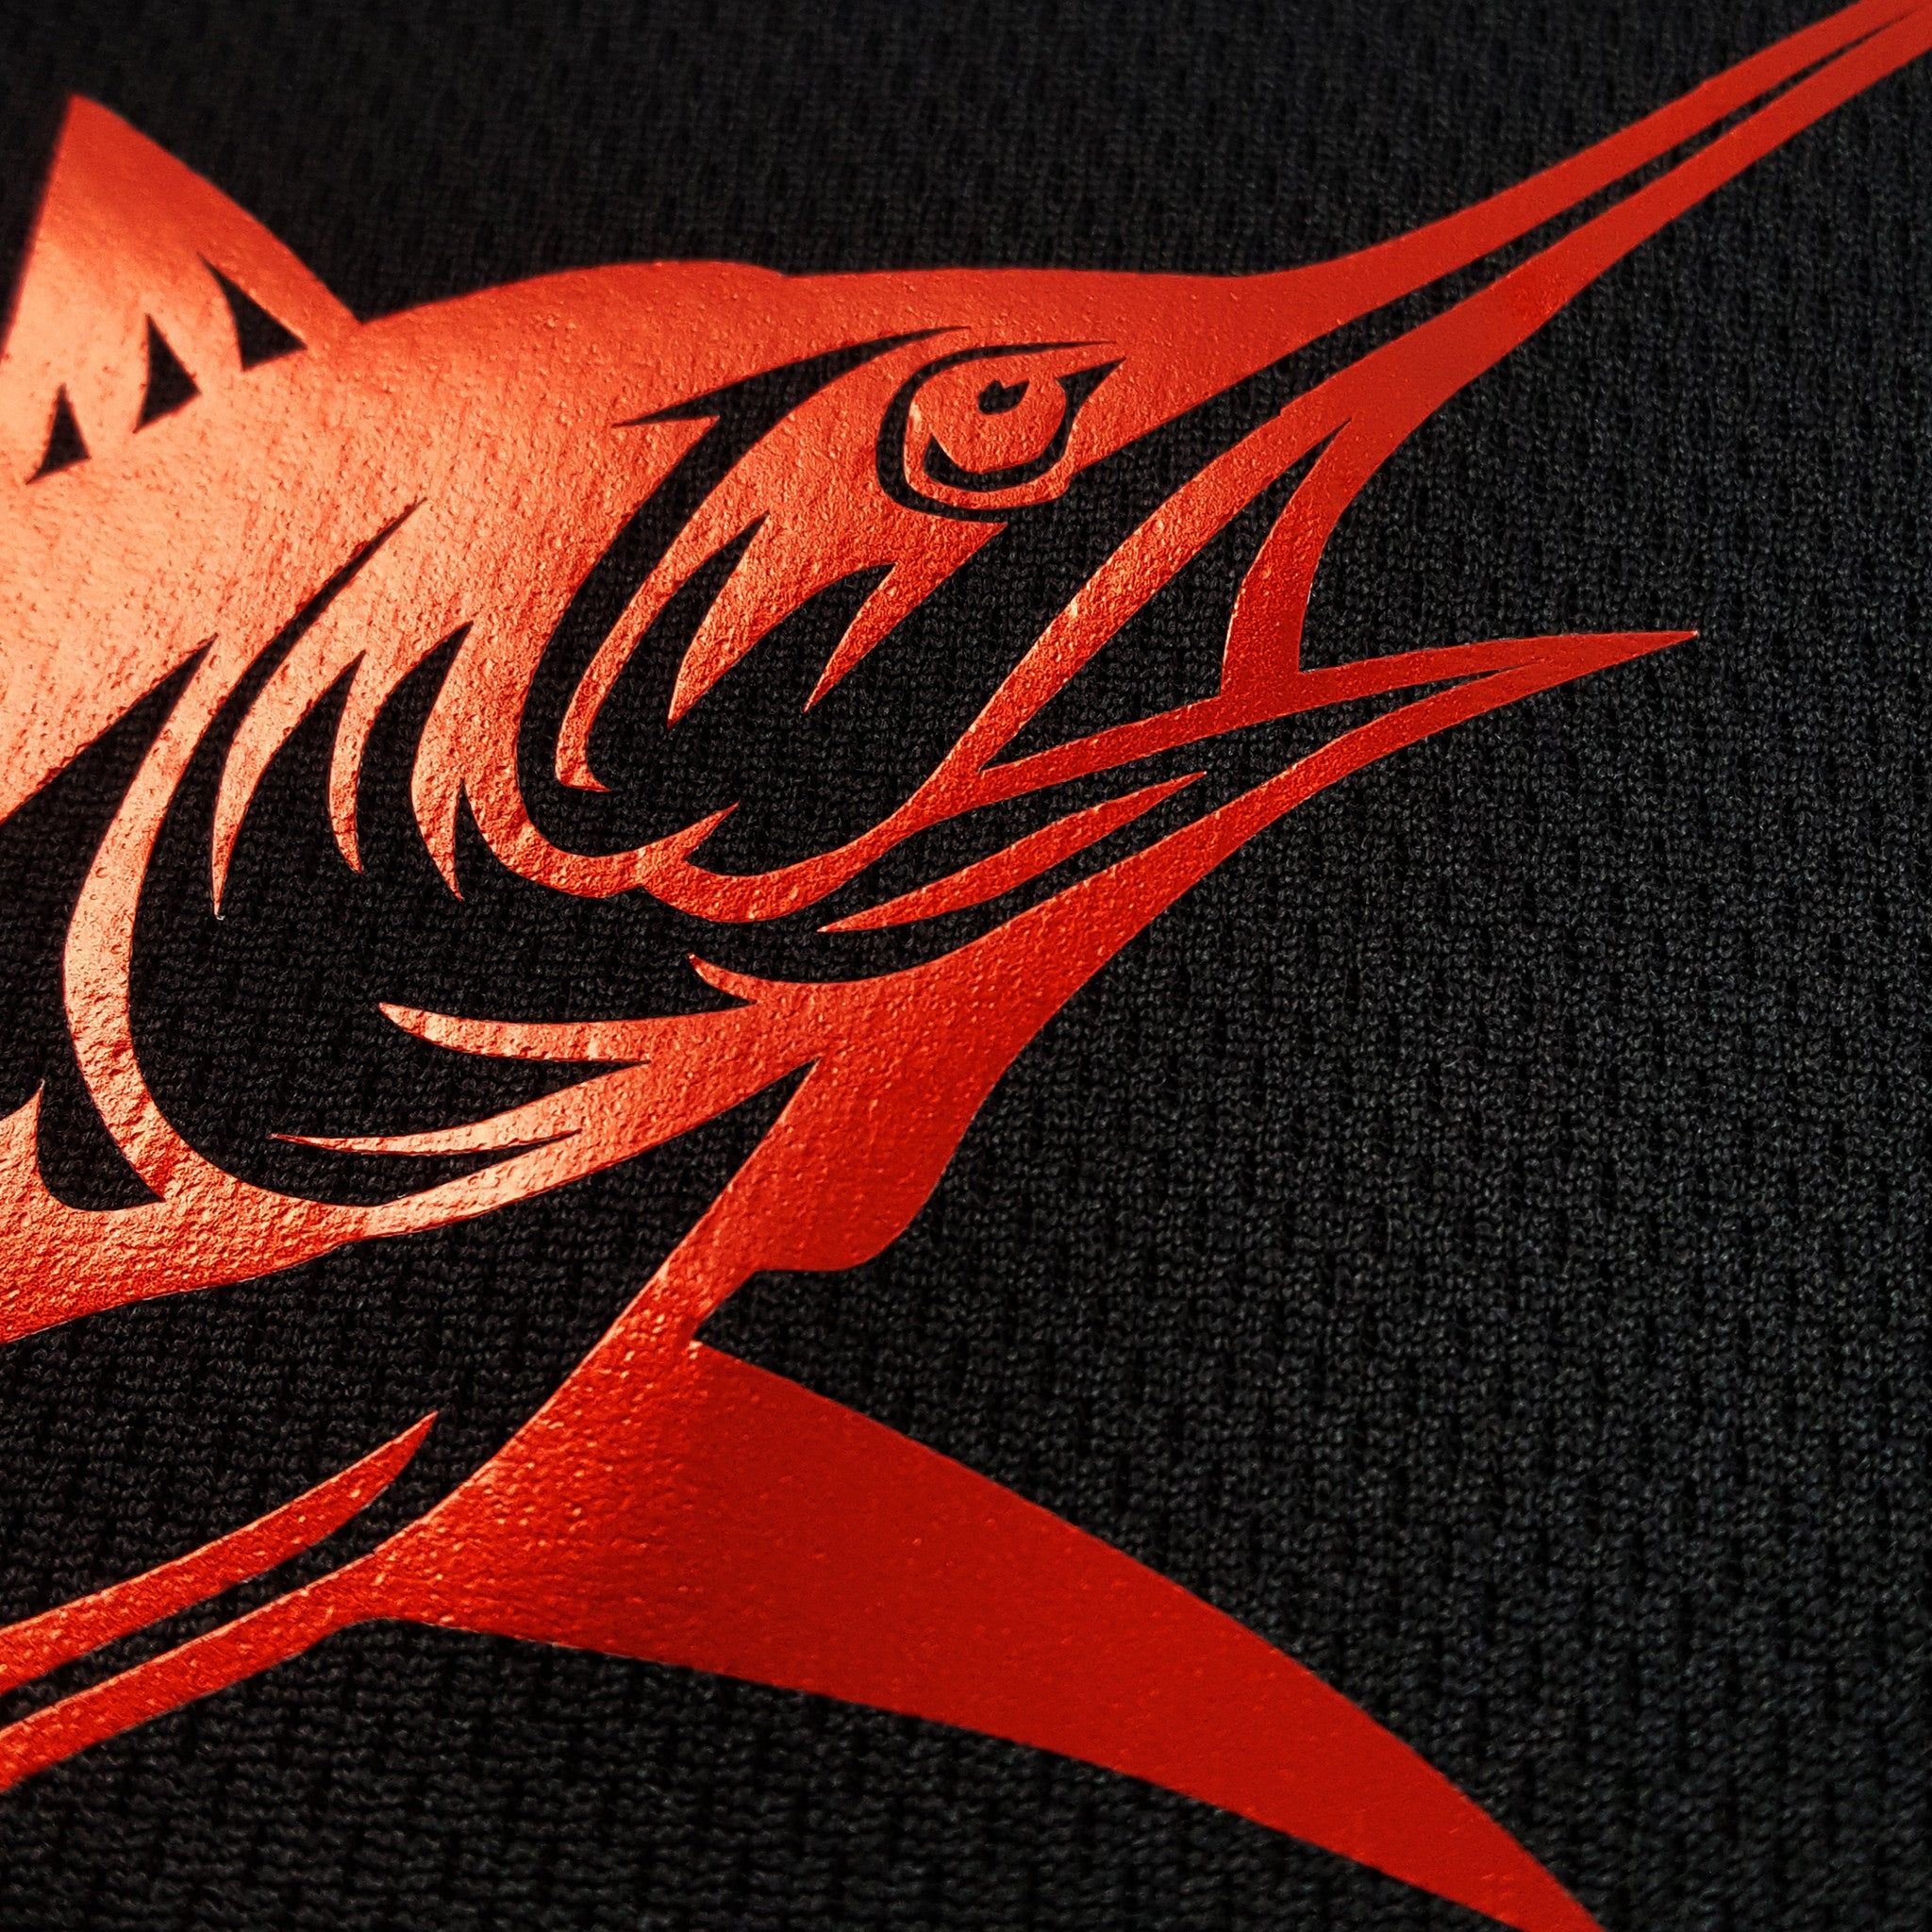 SportyFish Black Series black t-shirt: Black marlin close-up view